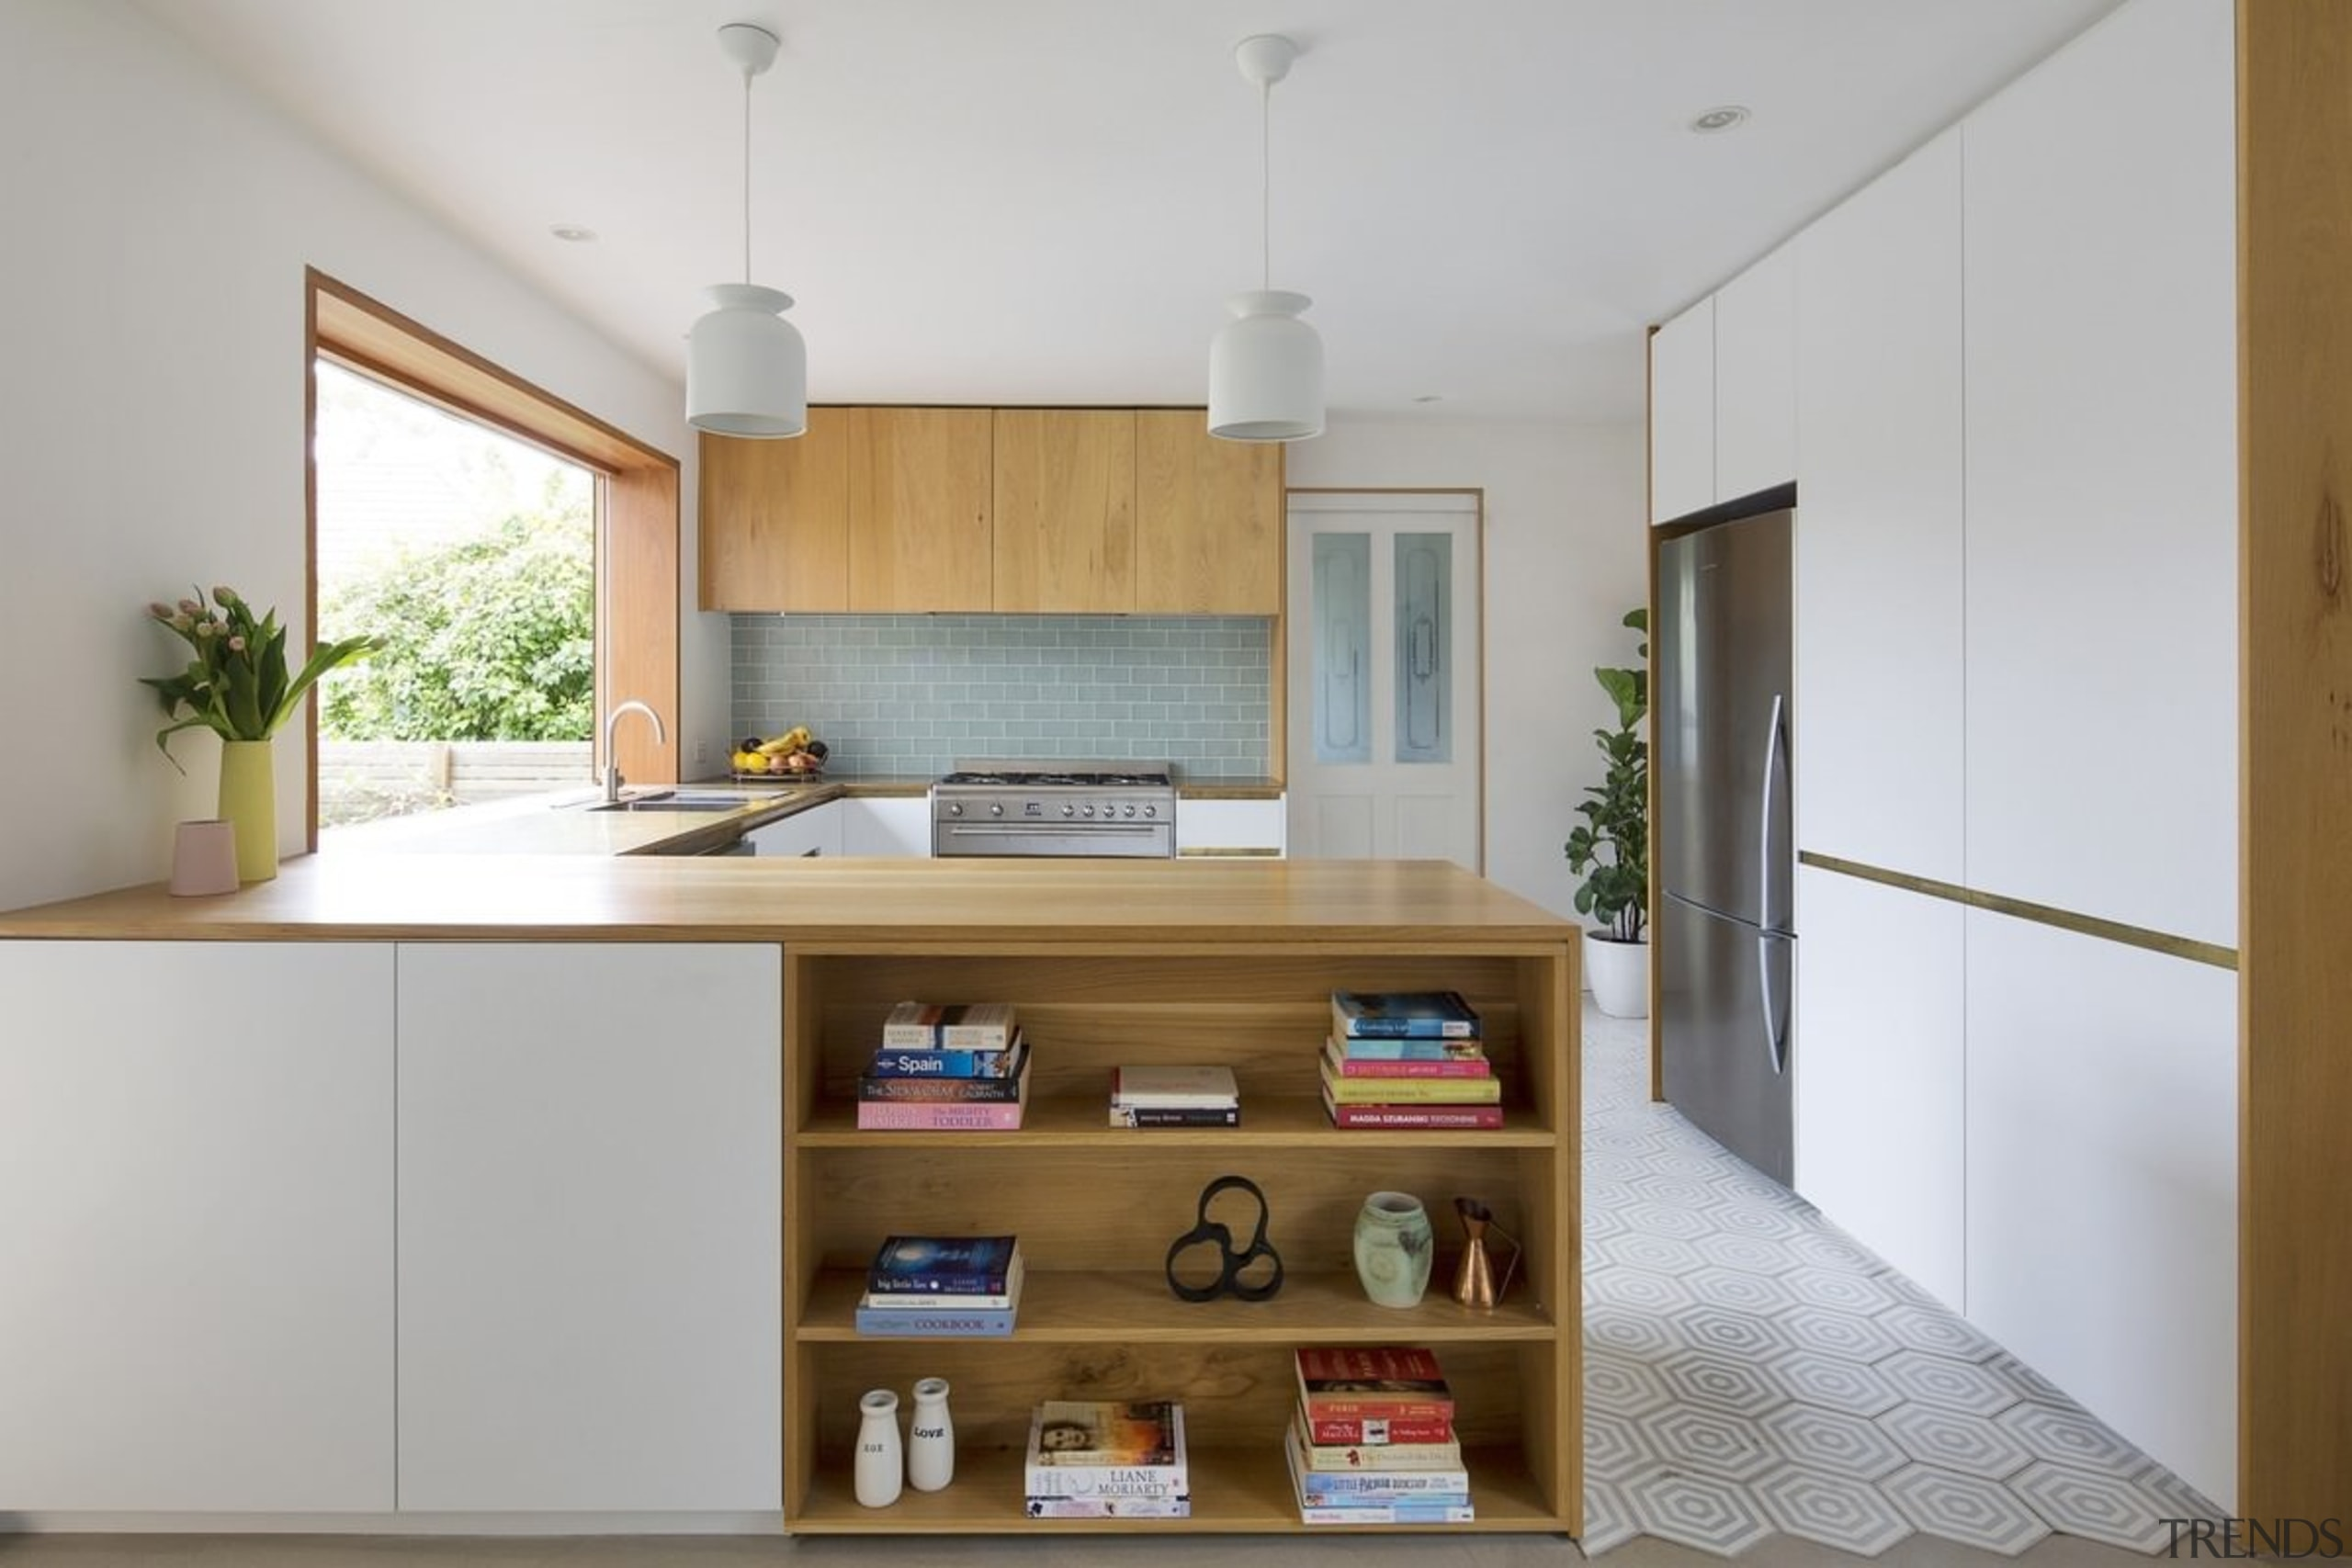 The kitchen features a useful shelf on the architecture, cabinetry, countertop, cuisine classique, interior design, kitchen, real estate, gray